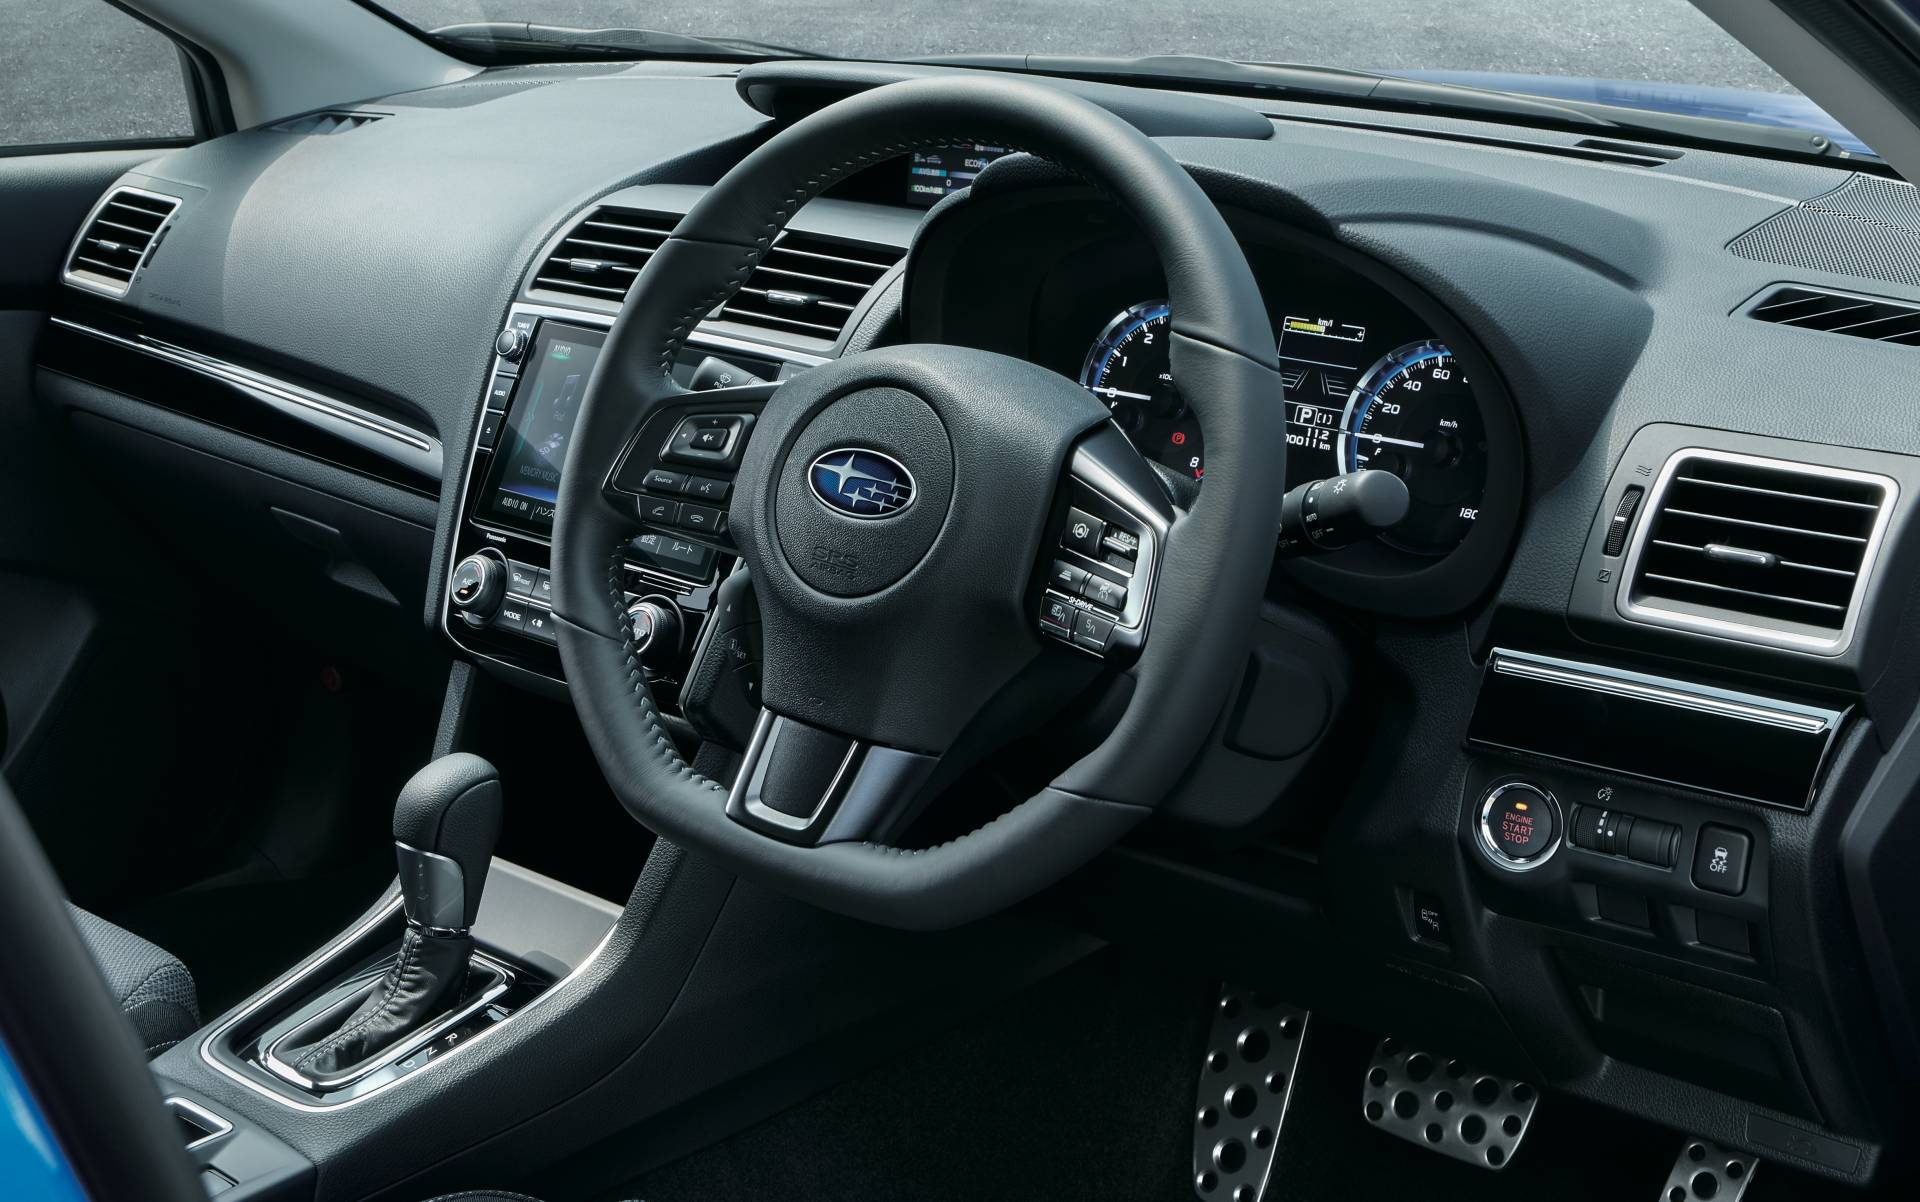 Subaru-Levorg-2.0GT-EyeSight-V-Sport-10